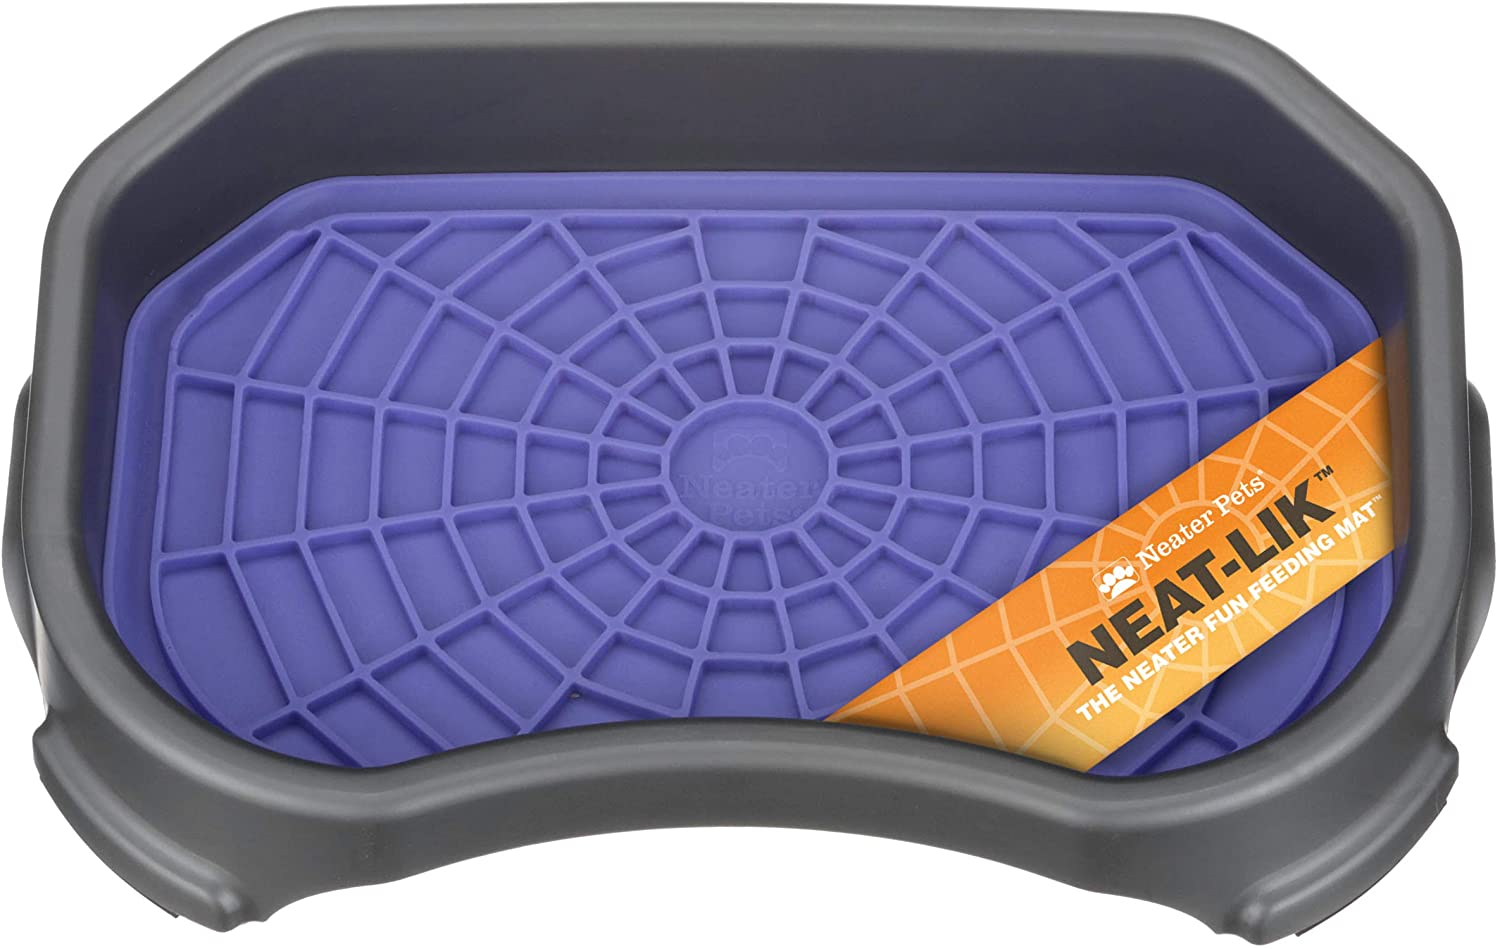 Neater Pets - Neat-LIK Mat with Mess-Proof Tray Keeps Floors Clean - Slow Feeding Lick Mat for Dogs & Cats - Relieves Anxiety & Cures Boredom - Fill Licking Pad with Treats & Food (Purple & Gunmetal)